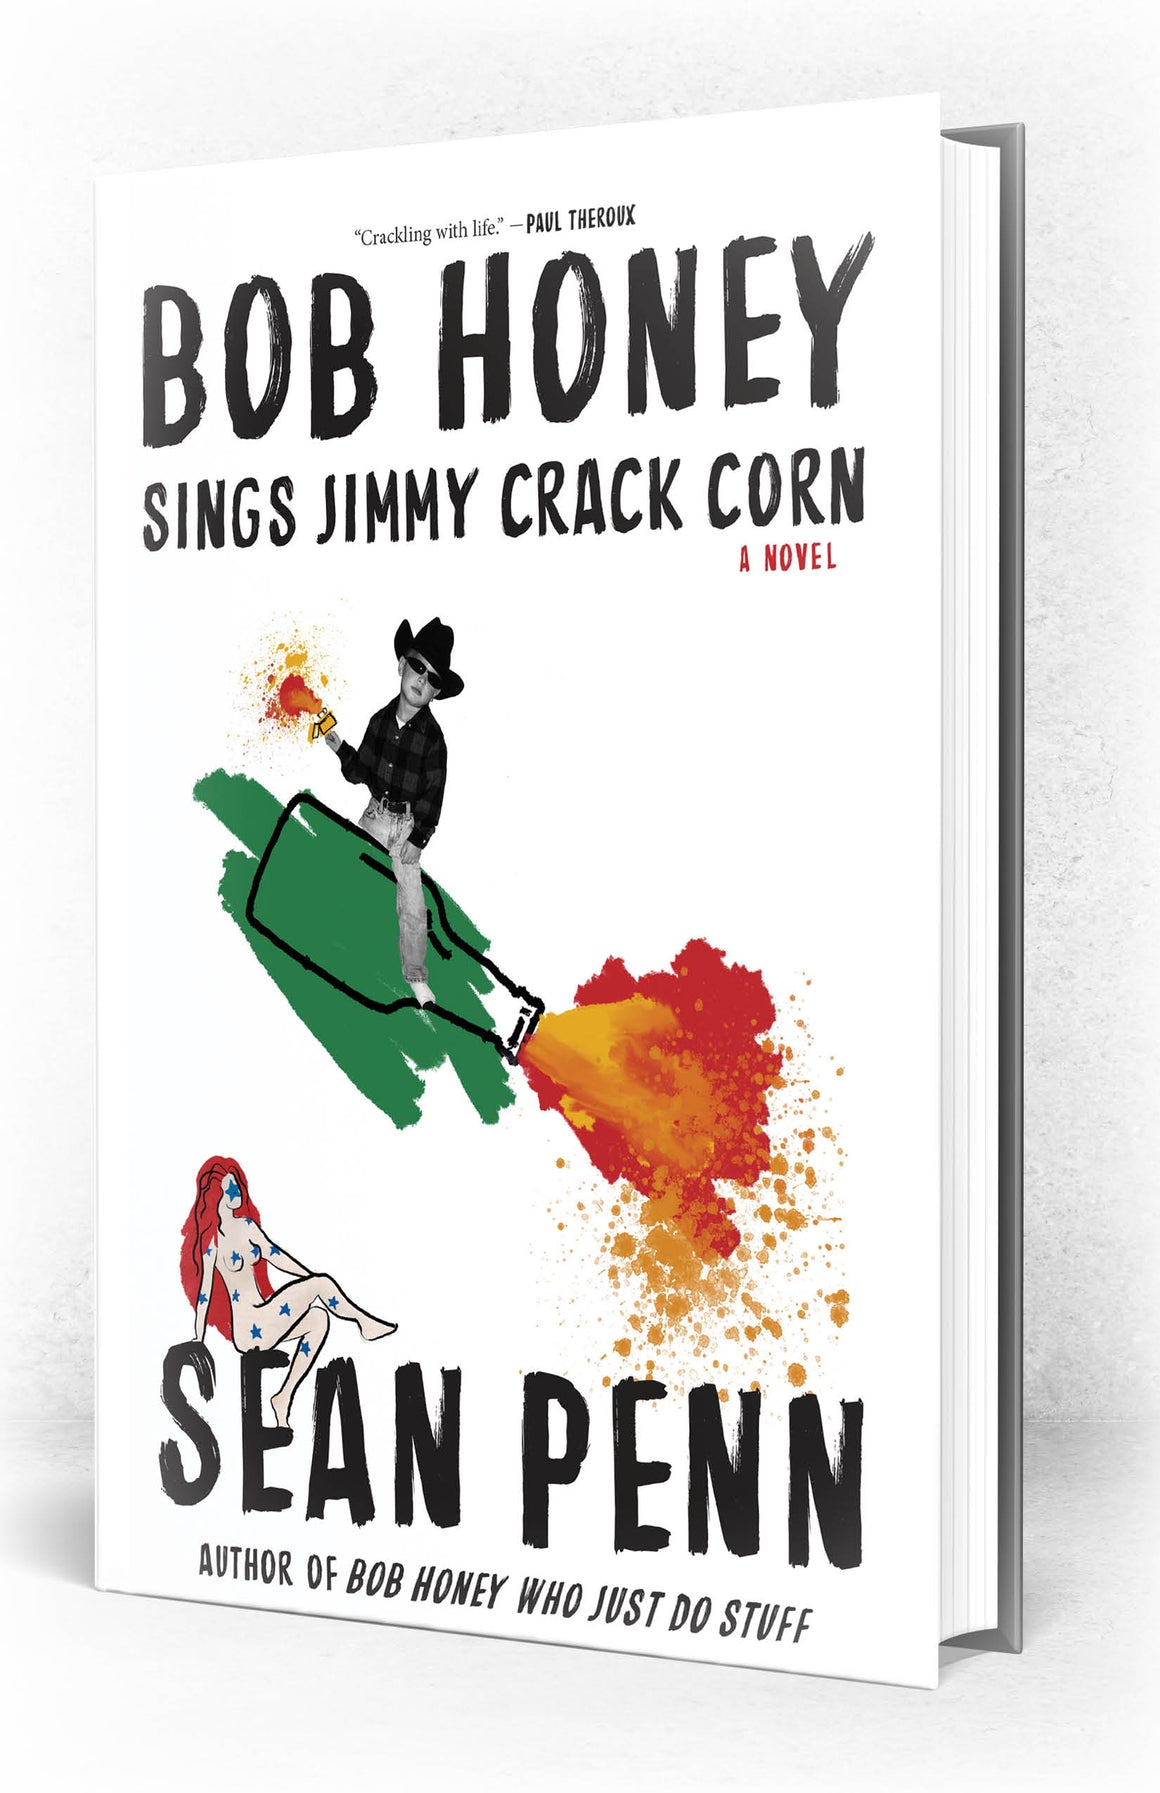 Bob Honey Sings Jimmy Crack Corn [Signed Preorder]